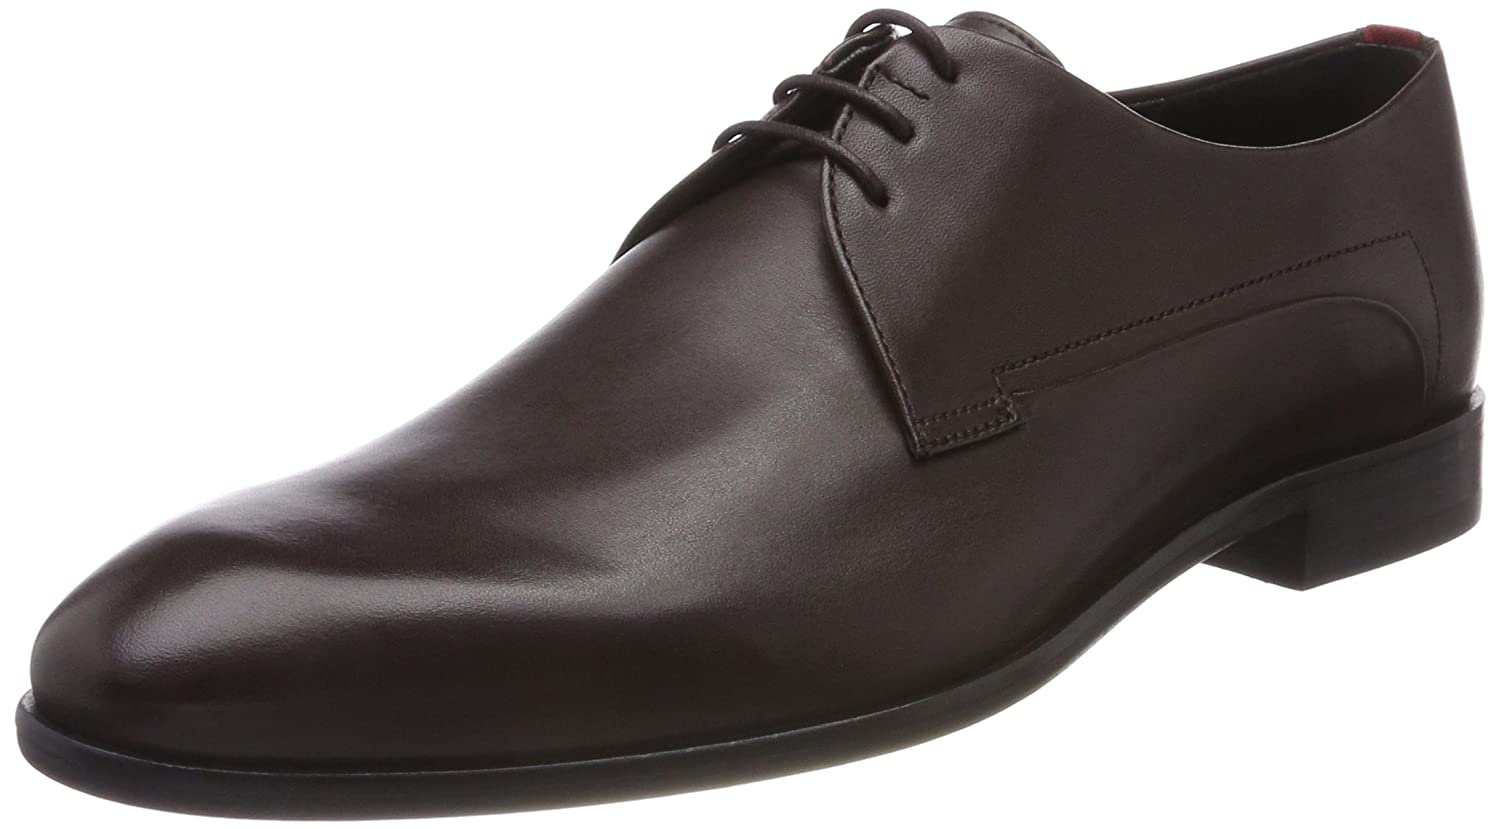 New Mens HUGO Brown Appeal/_derb/_it Leather Shoes Lace Up